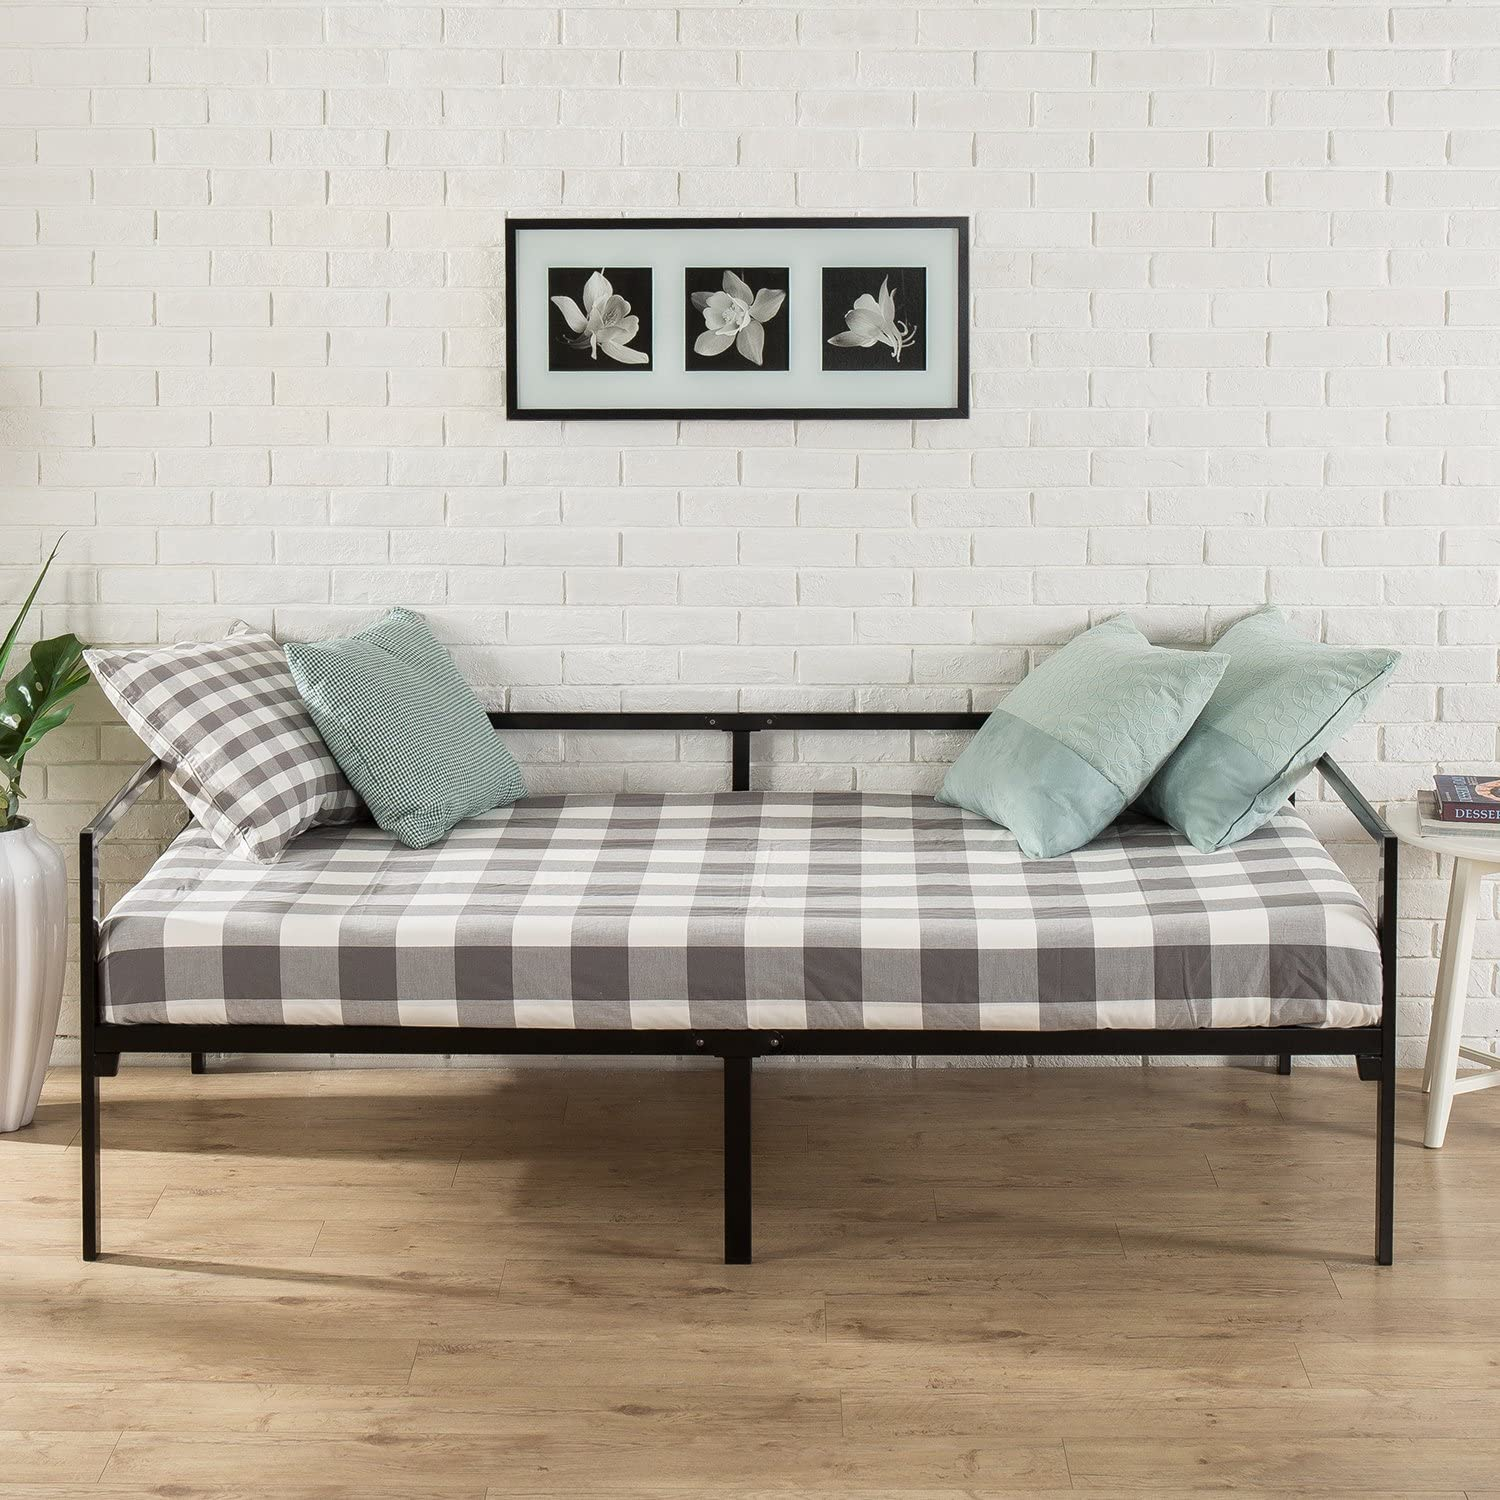 Review of Zinus Brandi Quick Lock Twin Day Bed frame with Steel Slat Support